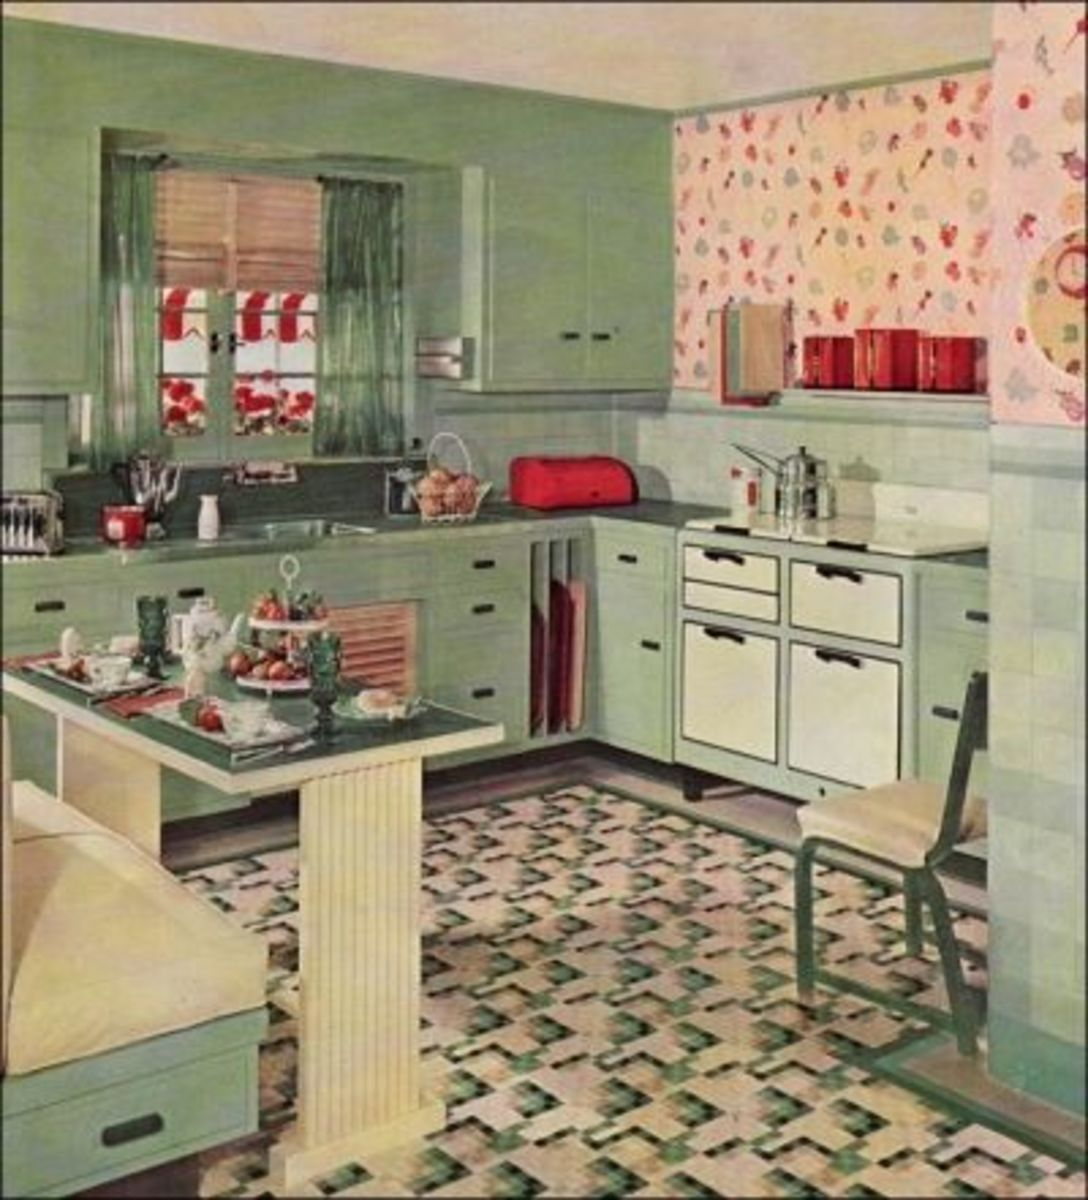 A Thirties Kitchen was an inspiration for the signature green that helped build Martha's empire.